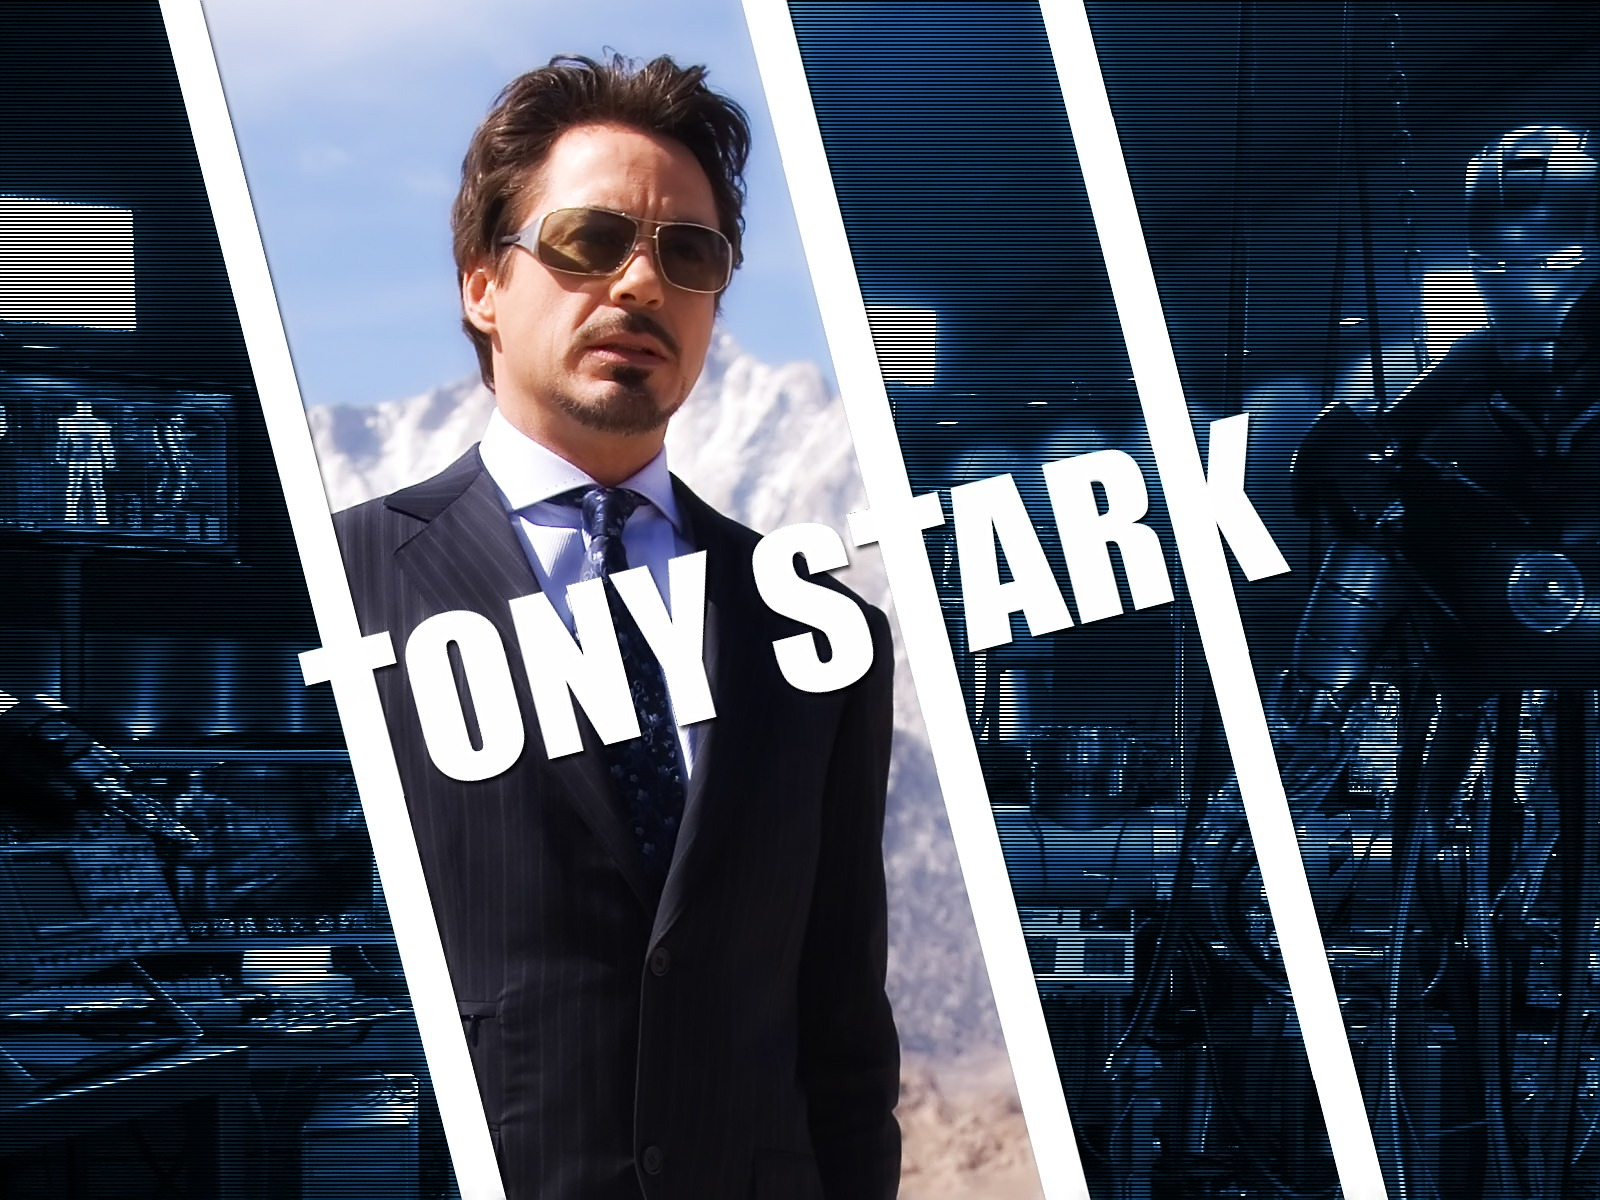 tony stark wallpaper iron man movies wallpapers in jpg format for